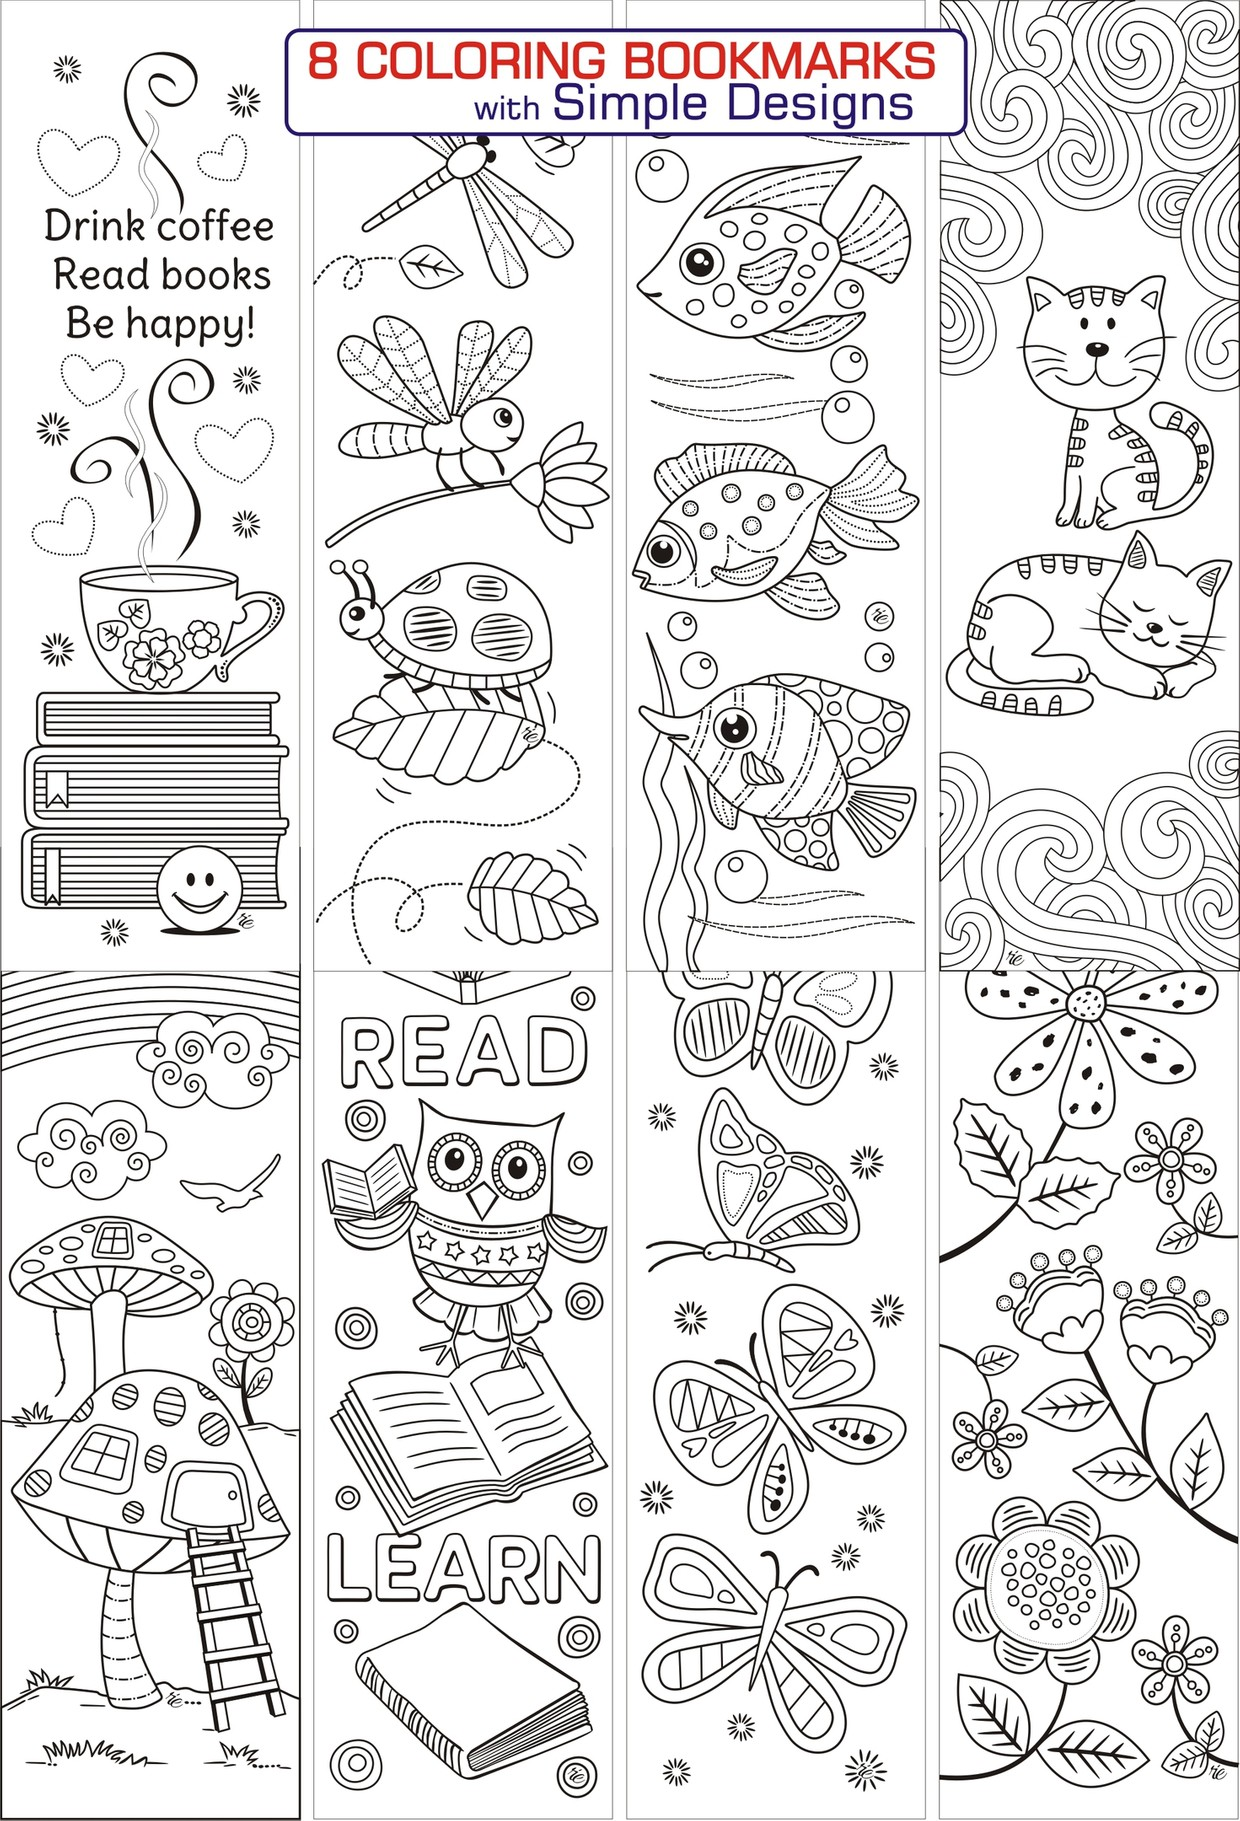 8 Simple Designs Coloring Bookmarks Ricldp Artworks